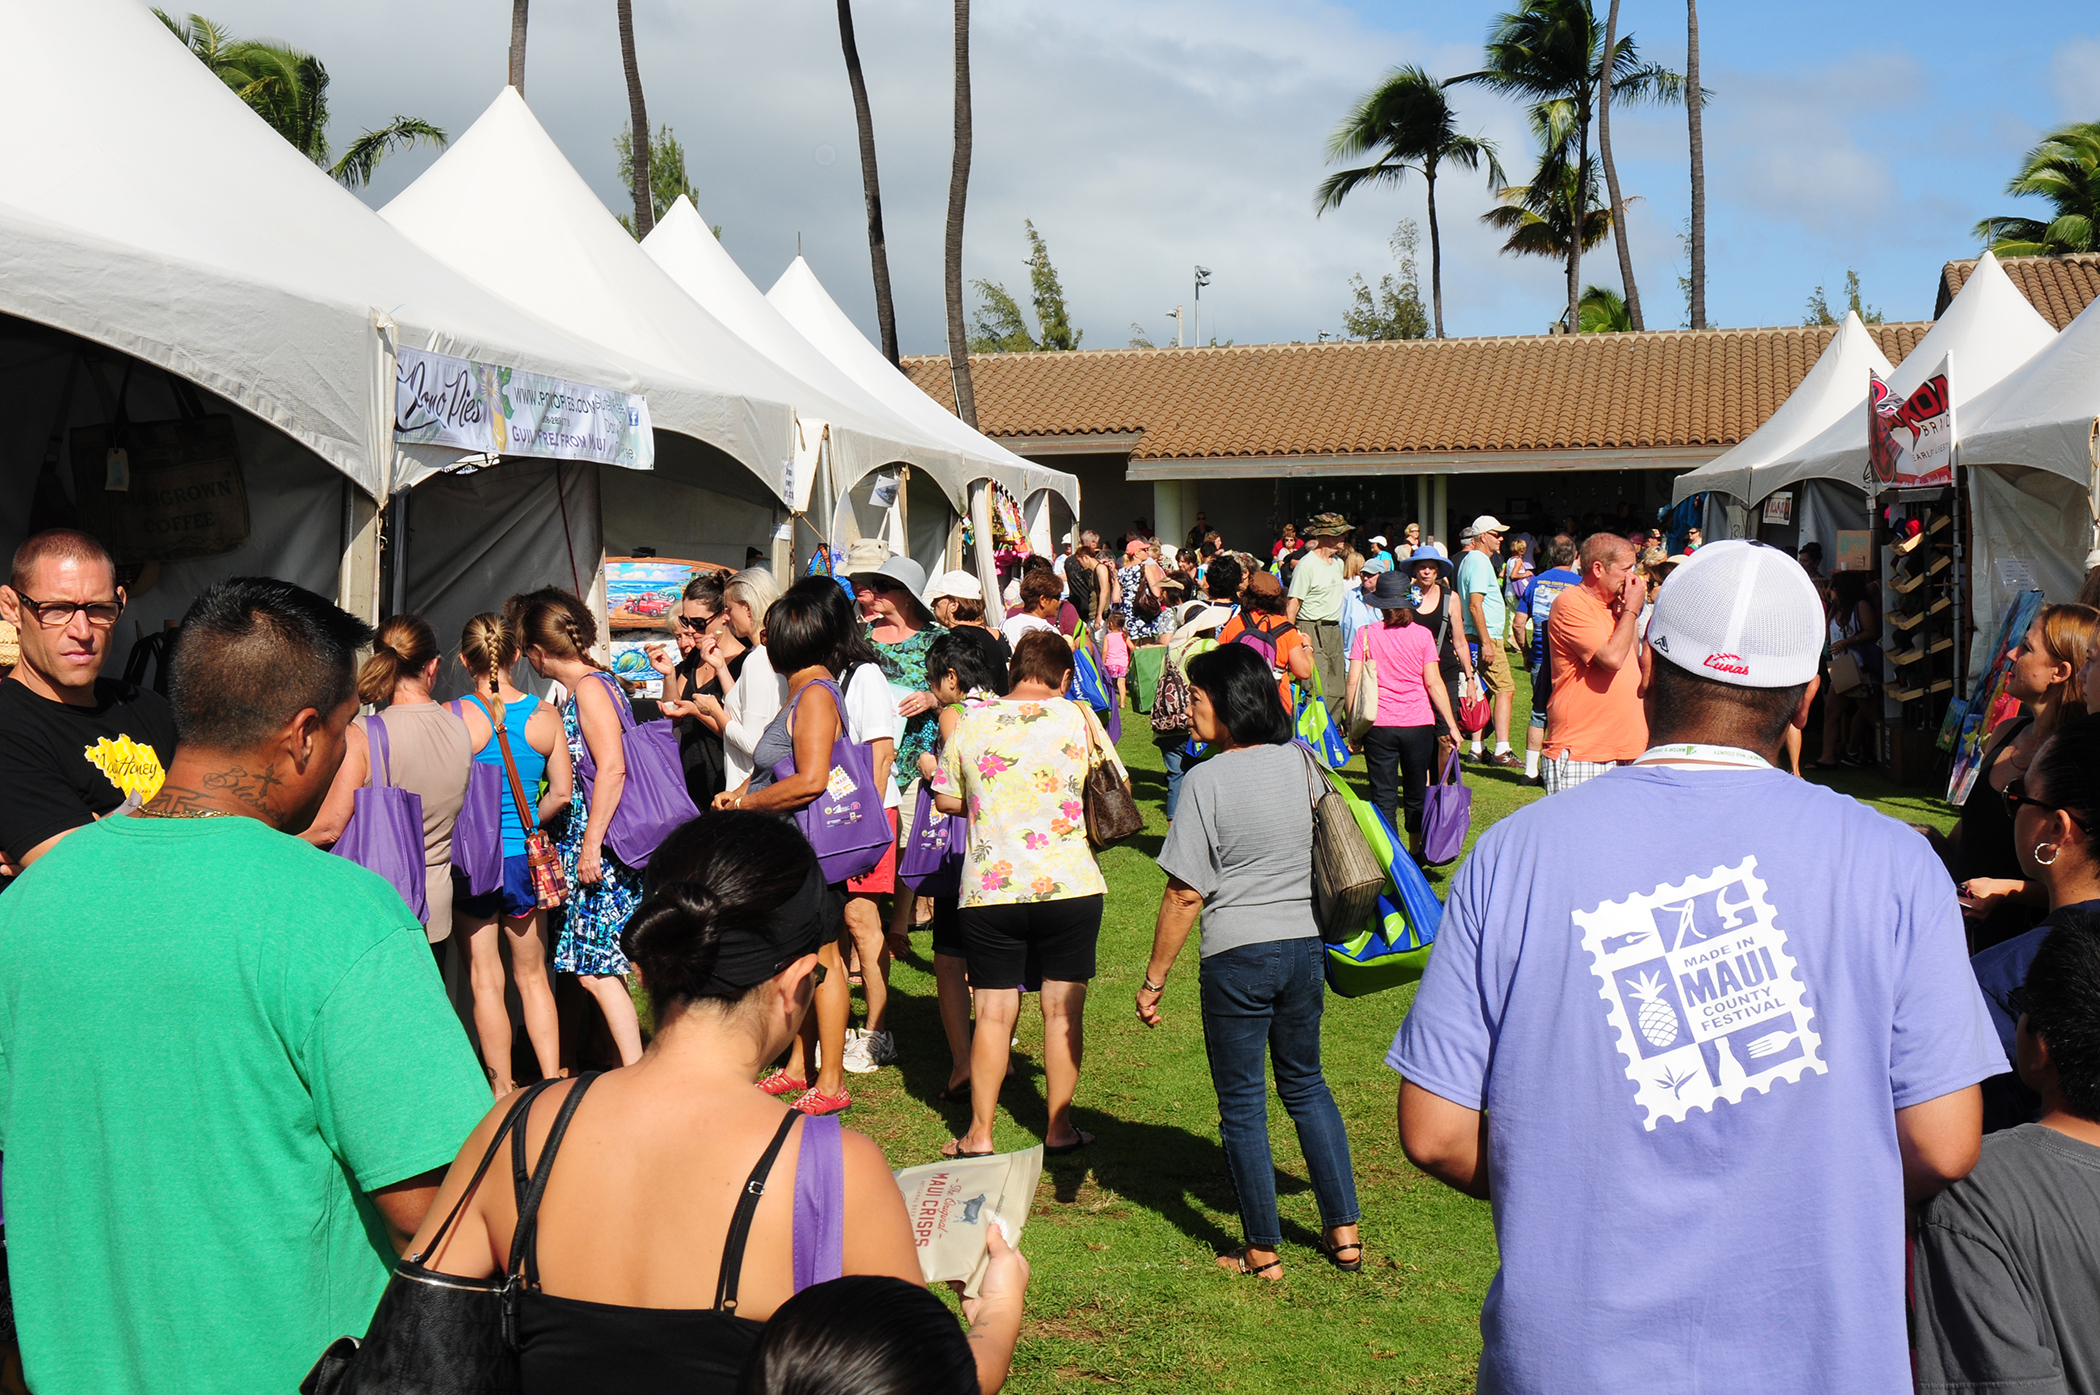 Each year, the Made in Maui County Festival attracts thousands of residents and visitors seeking locally made products by Maui County's businesses.